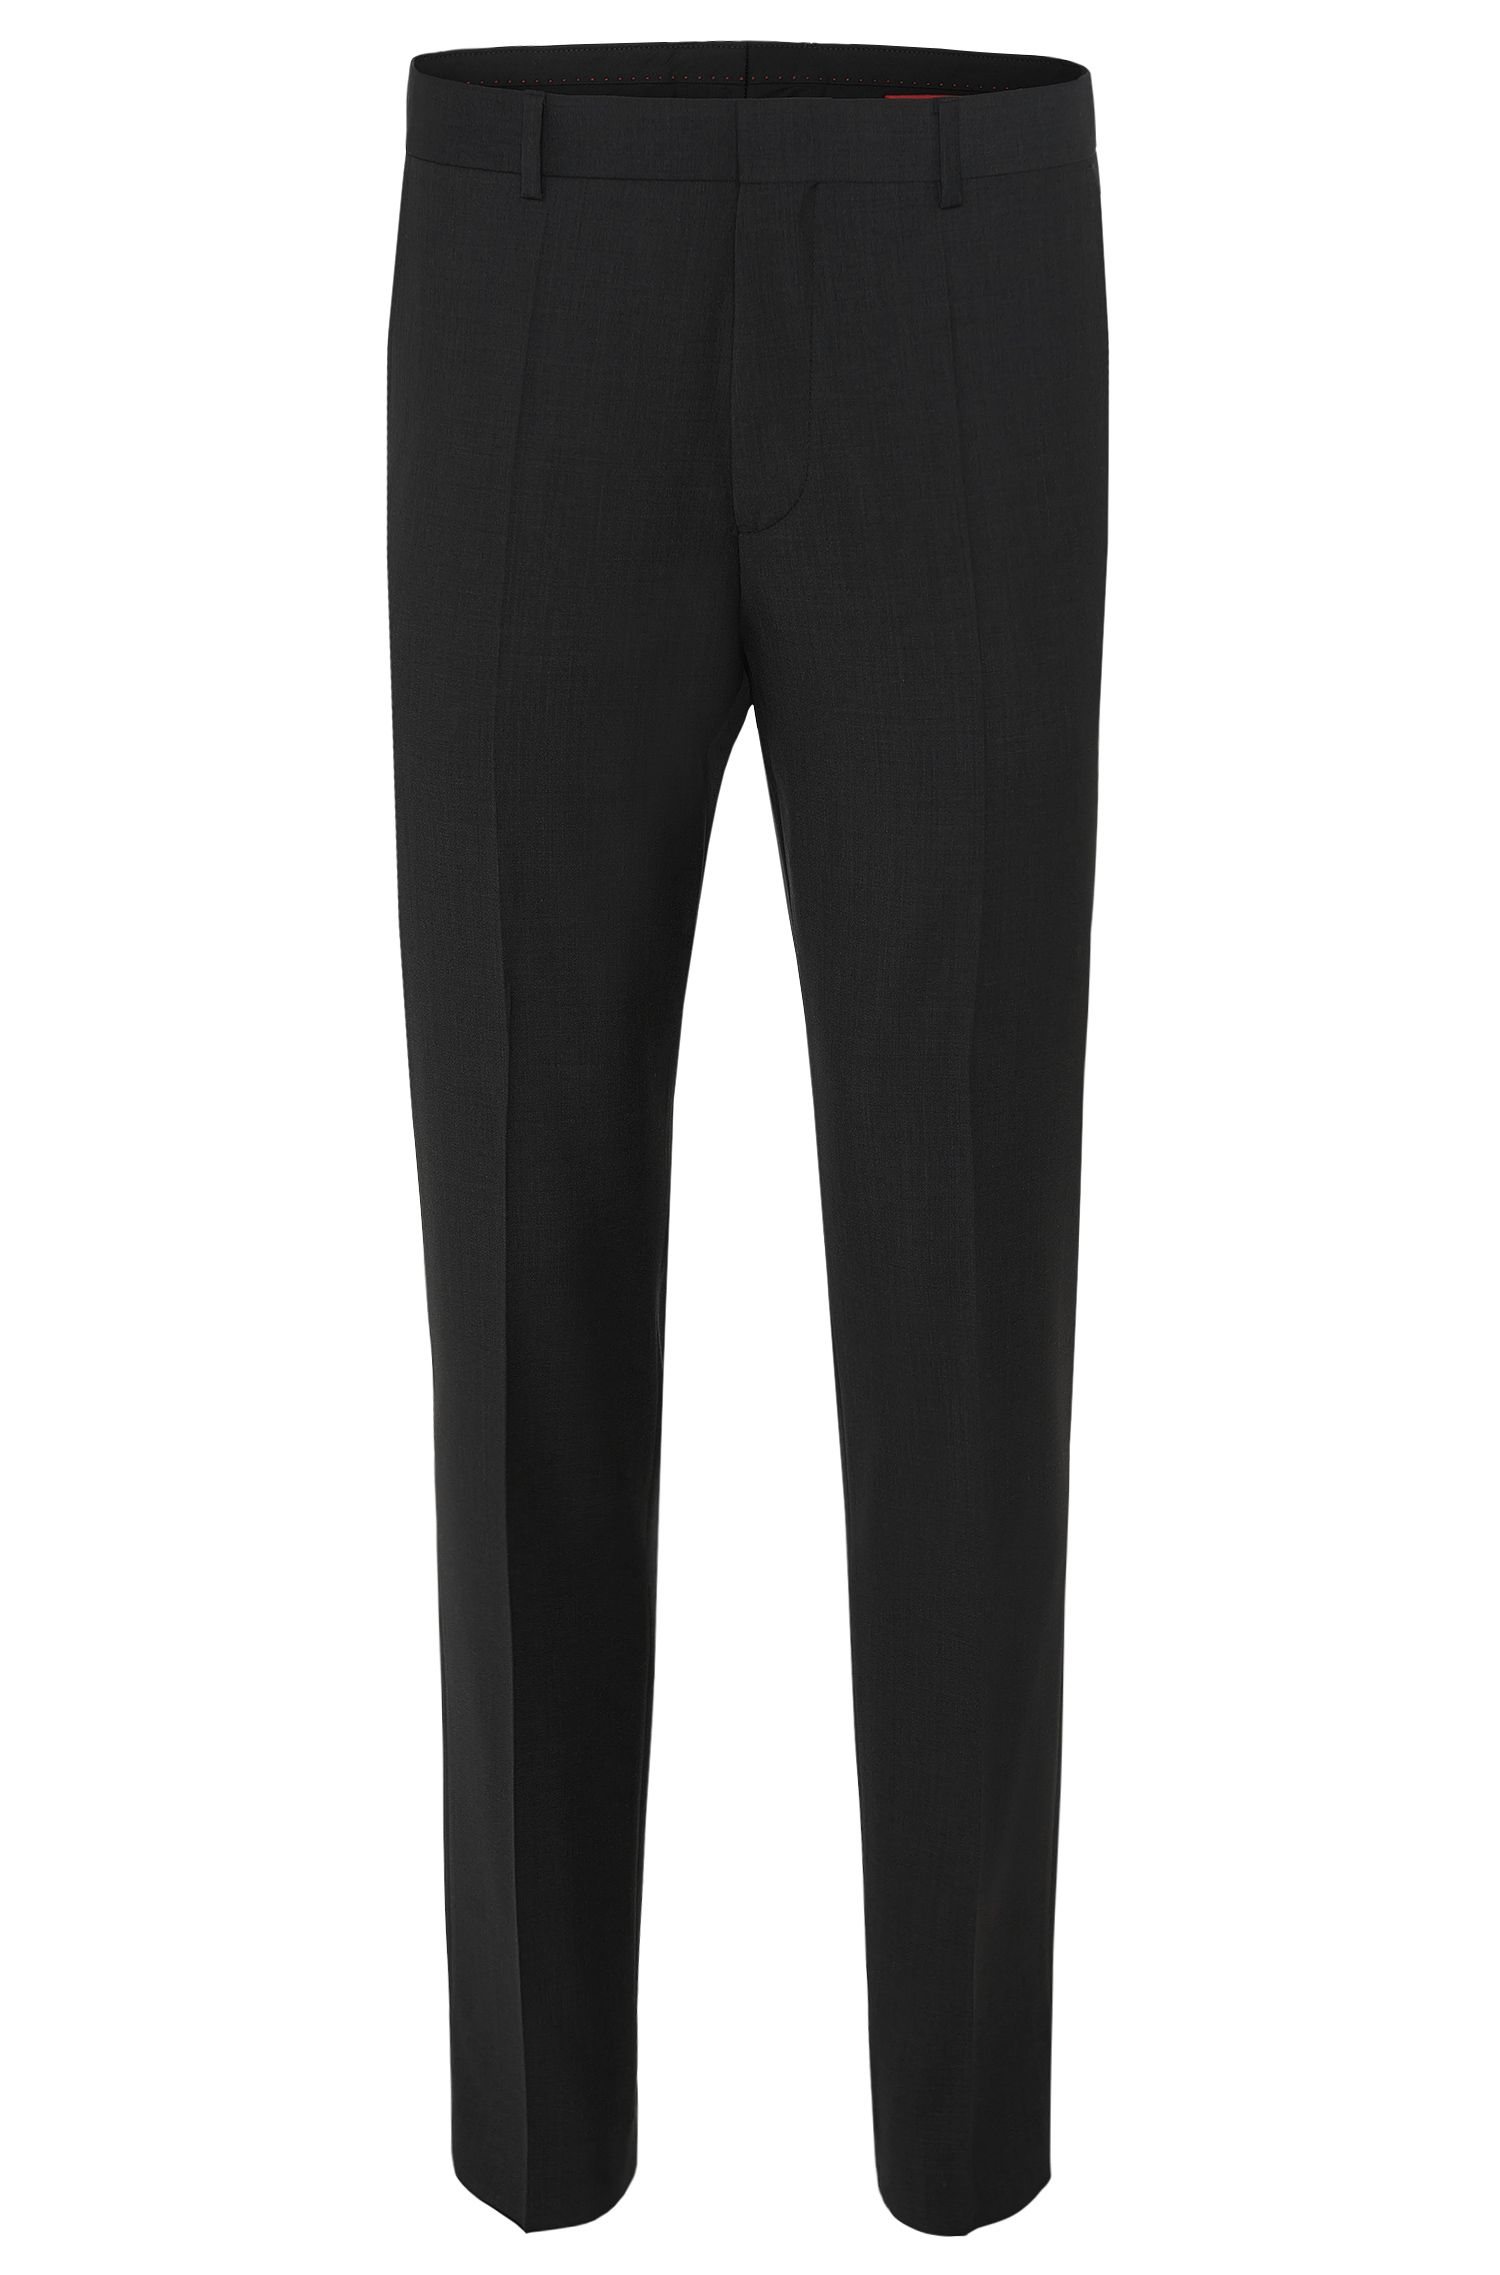 'HamenS' | Slim Fit, Virgin Wool Dress Pants